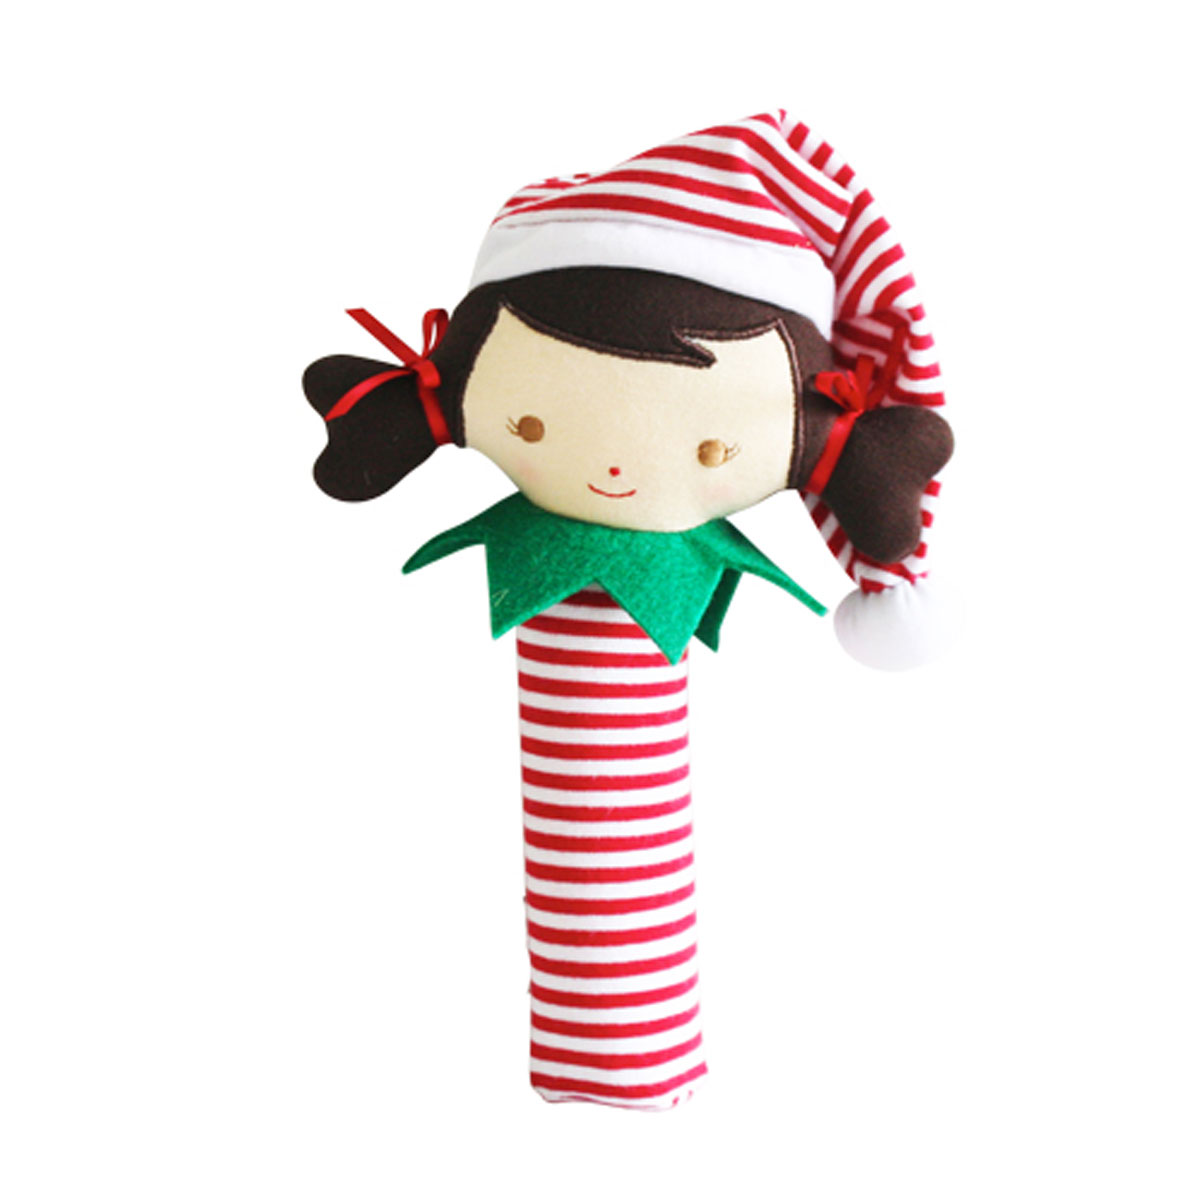 Alimrose Plush Elf Girl Squeaker Toy